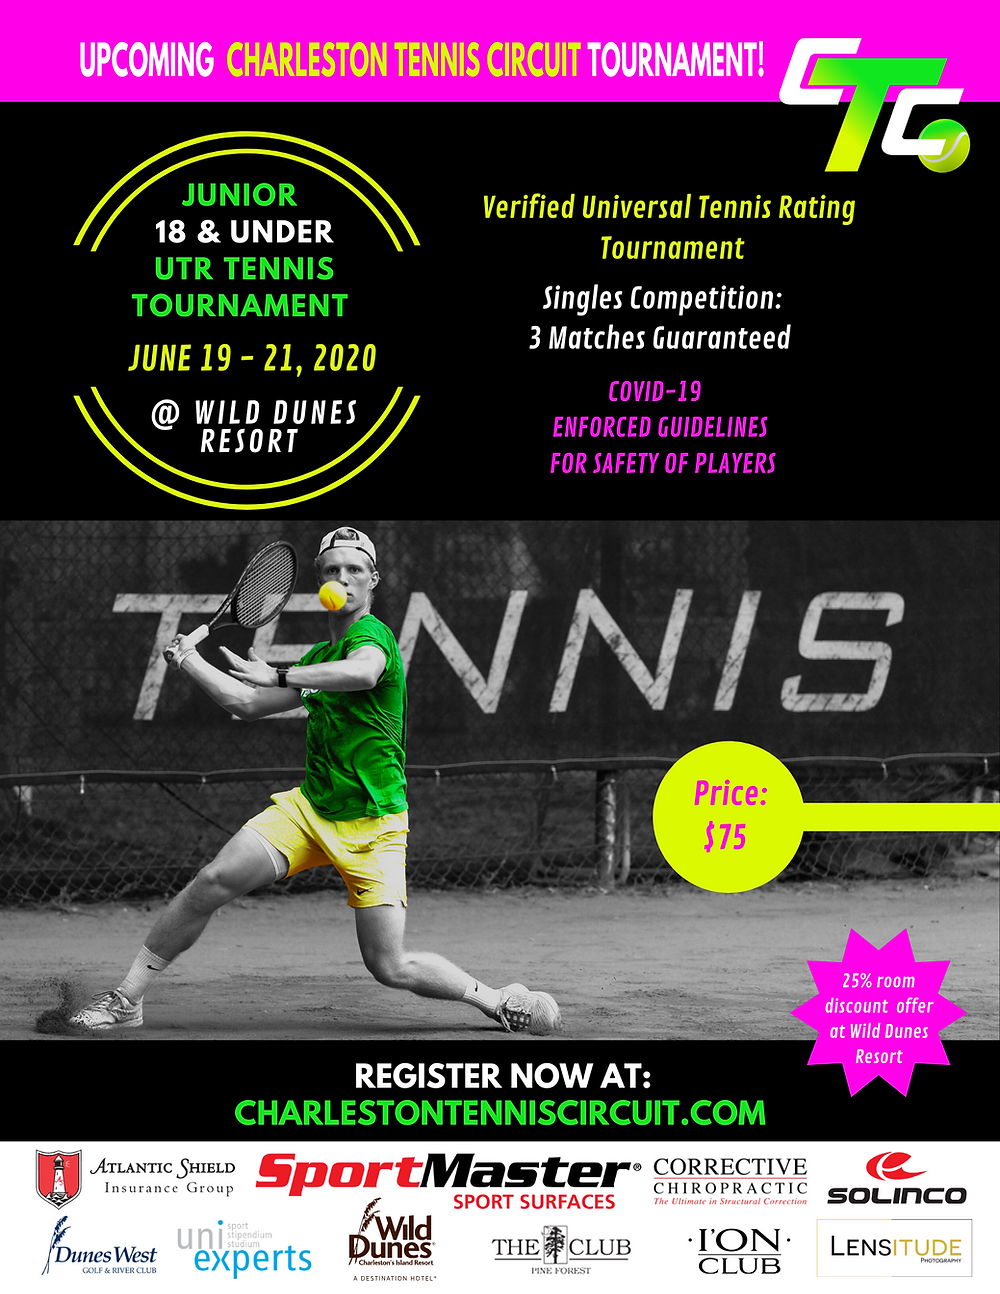 Verified UTR Junior Tennis Tournament 18 & Under in Wild Dunes South Carolina